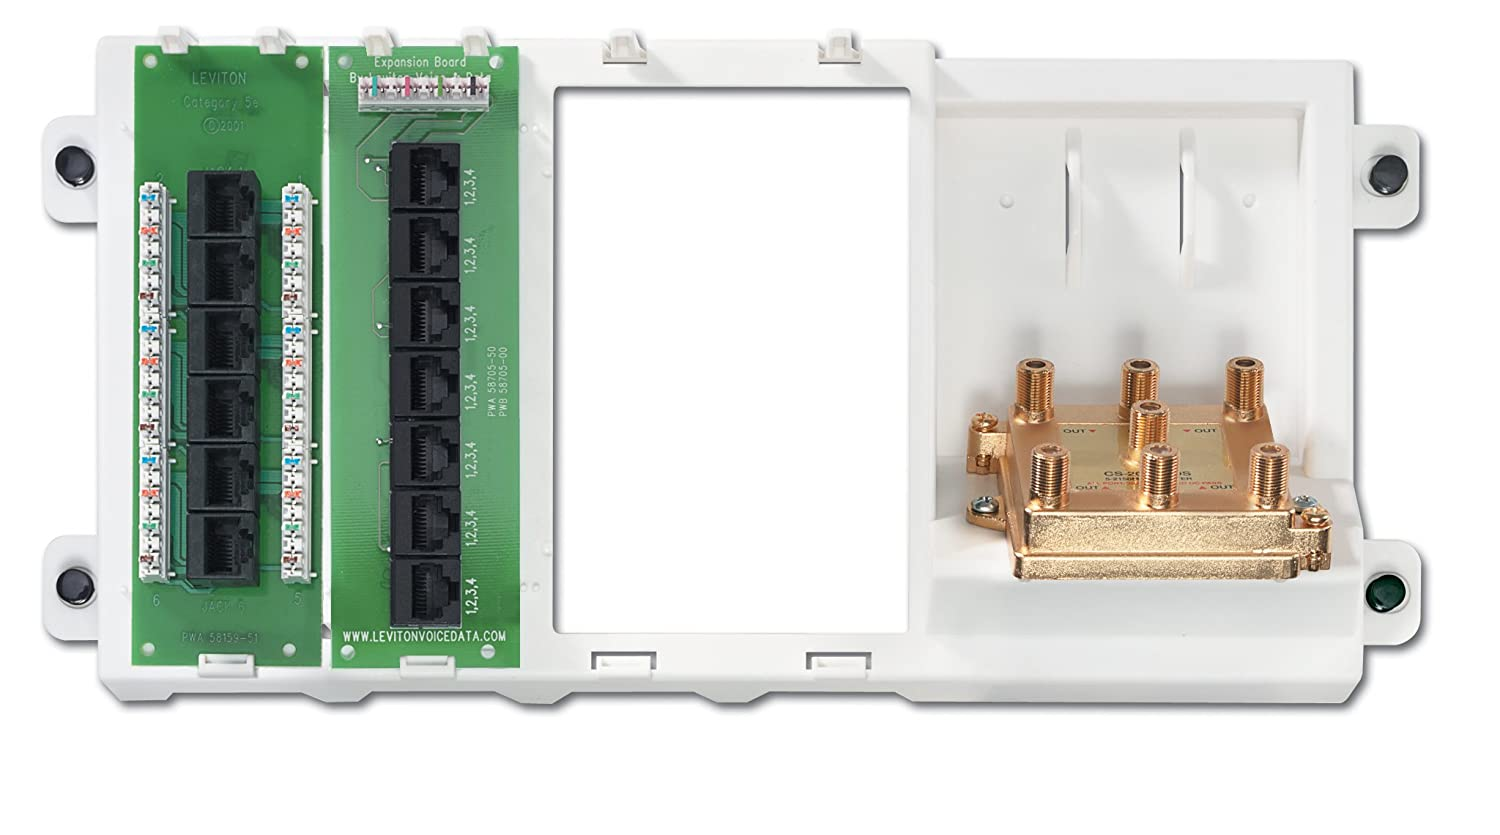 Leviton 47606-BNP Basic Home Networking Plus Panel, White - - Amazon.com